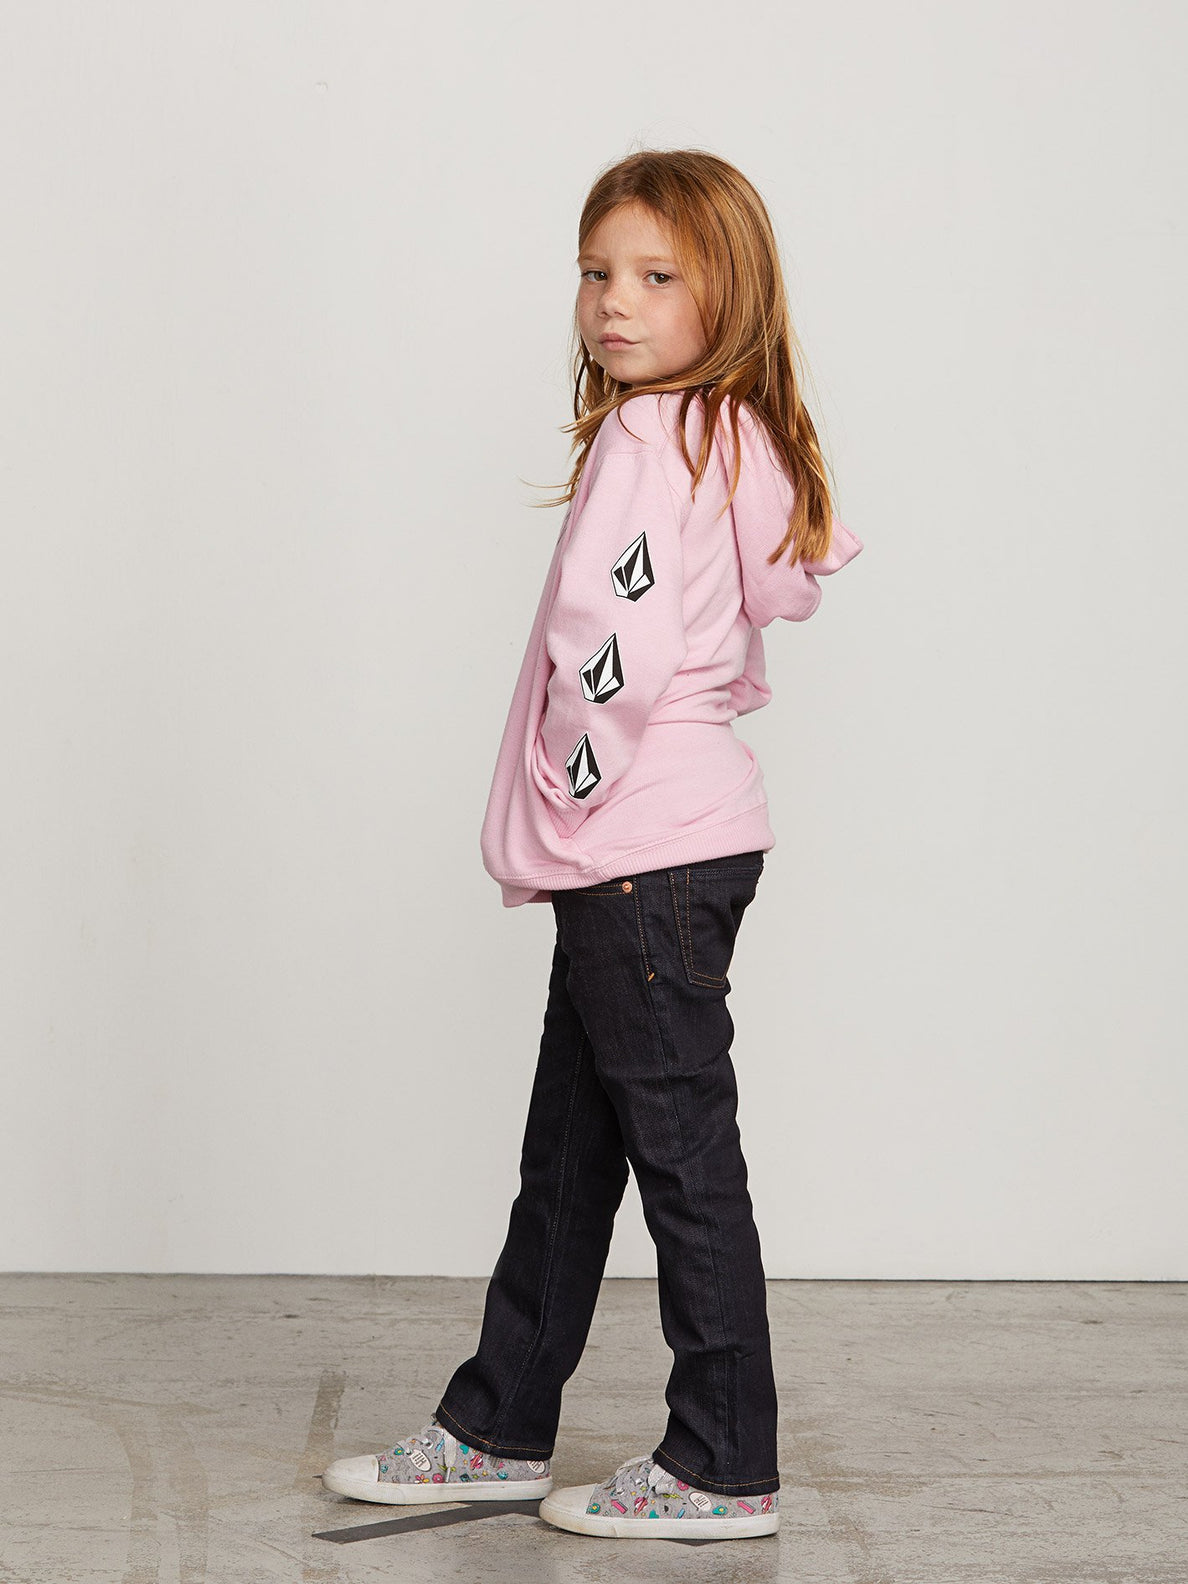 Little Girls Arm Candy Hoodie In Dusty Rose, Back View